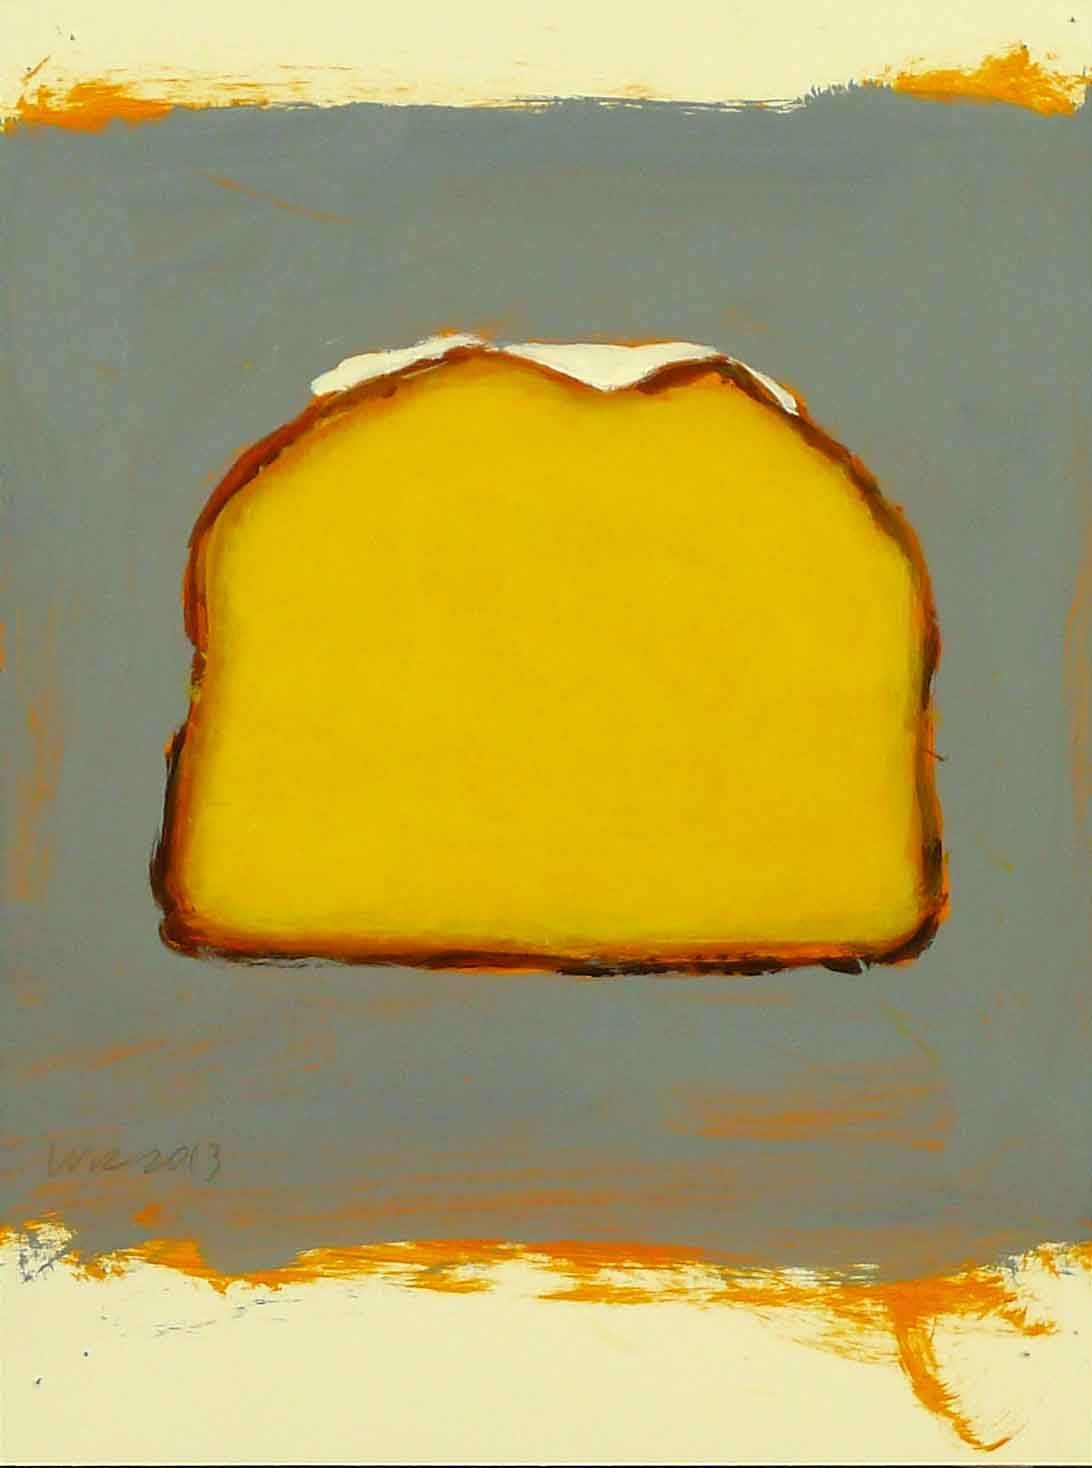 Fernandos_bakery_gourmet_iced_lemon_cake_2013_acrylic_on_paper_12_x_9_in